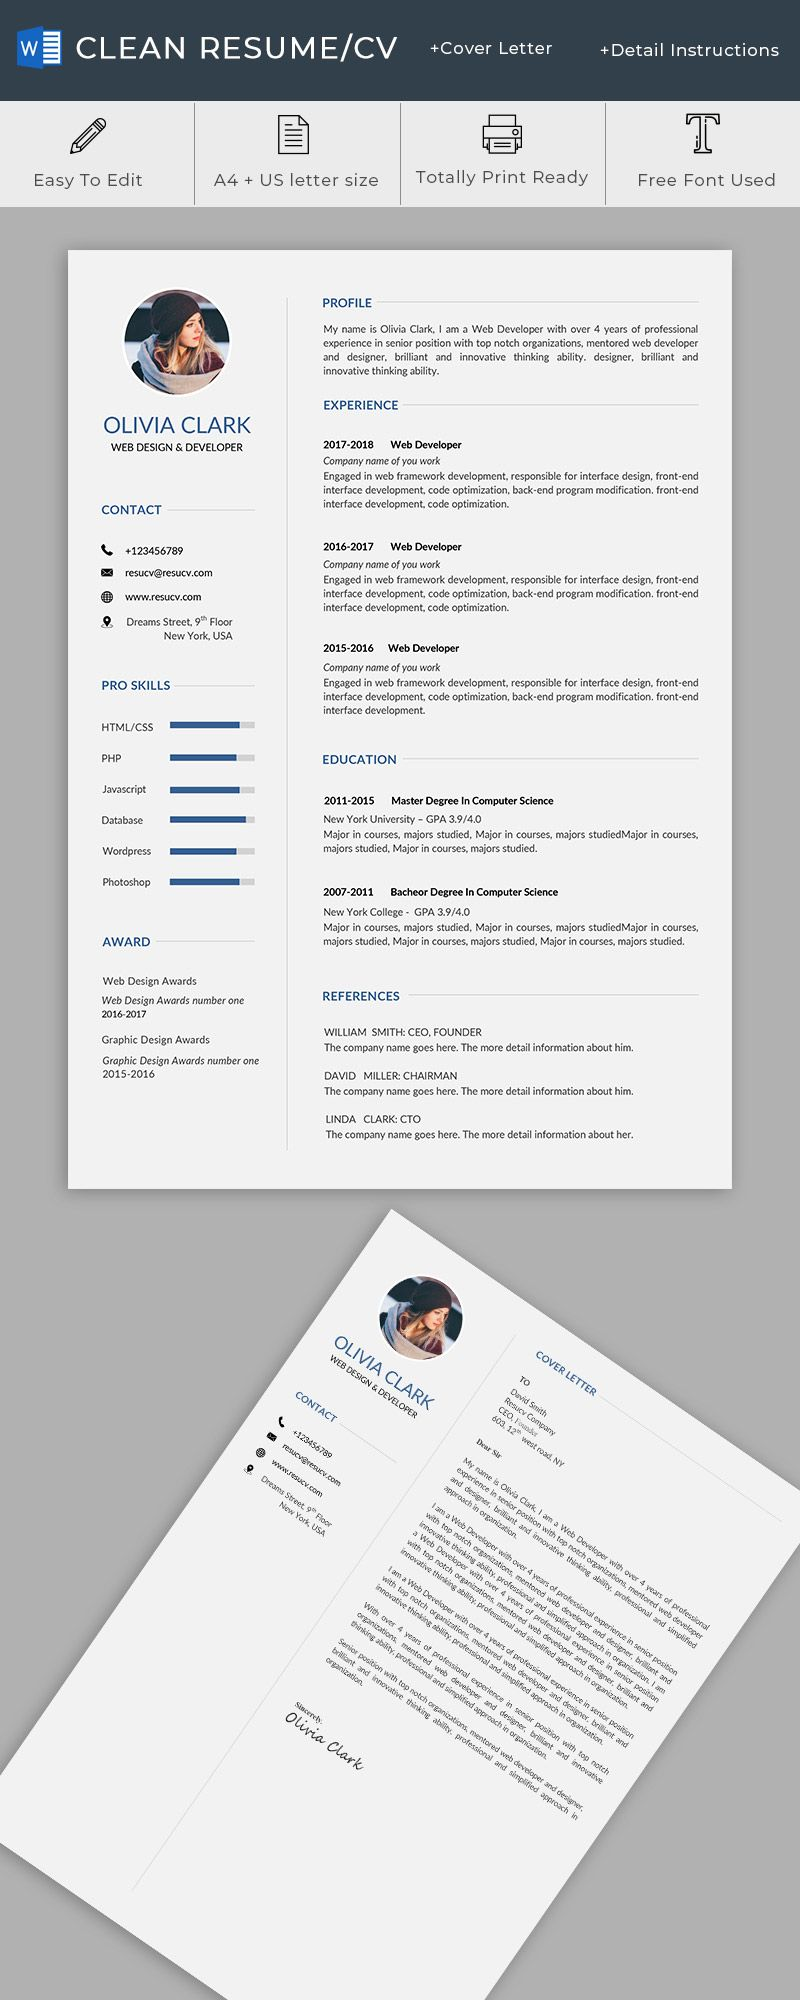 a clean resume cv templates for you resumes templates doctor resume